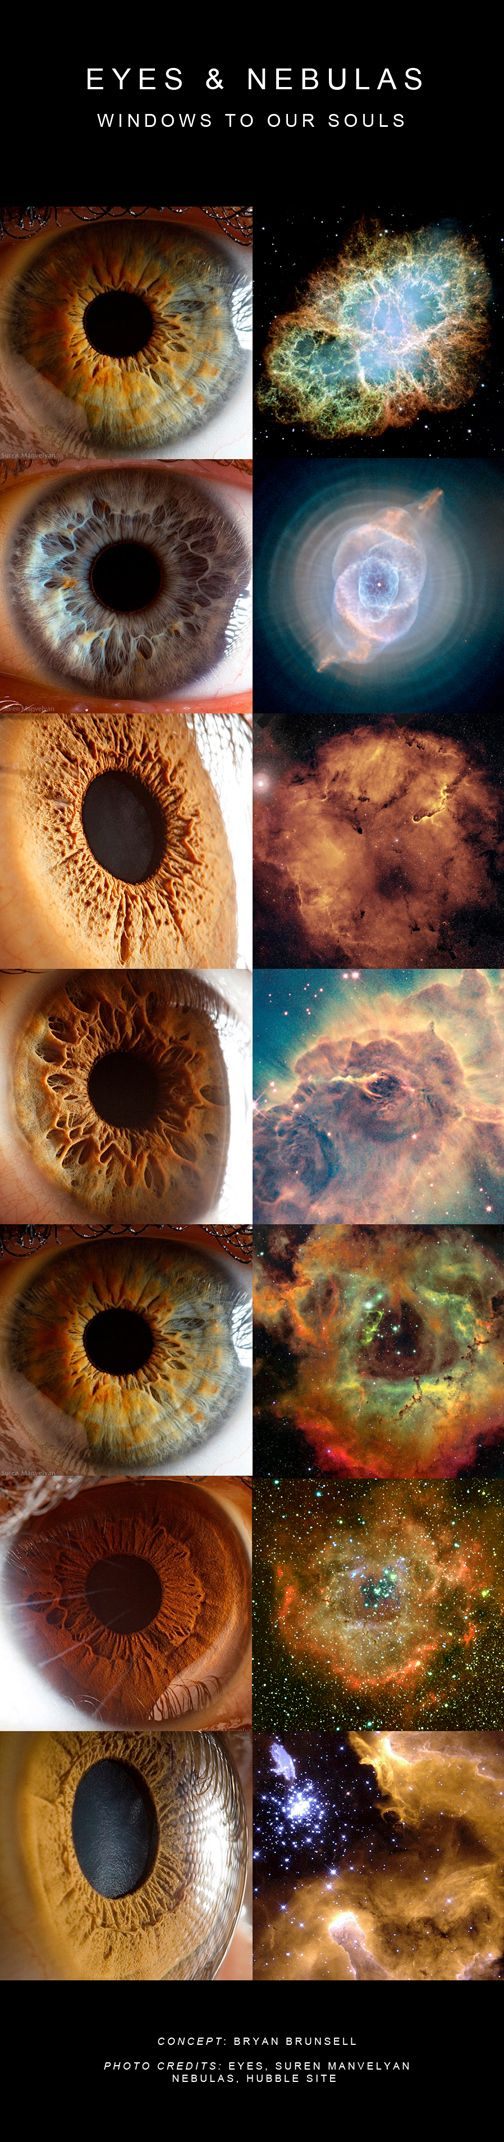 Our eyes are as beautiful as the galactic nebulae. We're part of the universe as much as the universe is part of us.